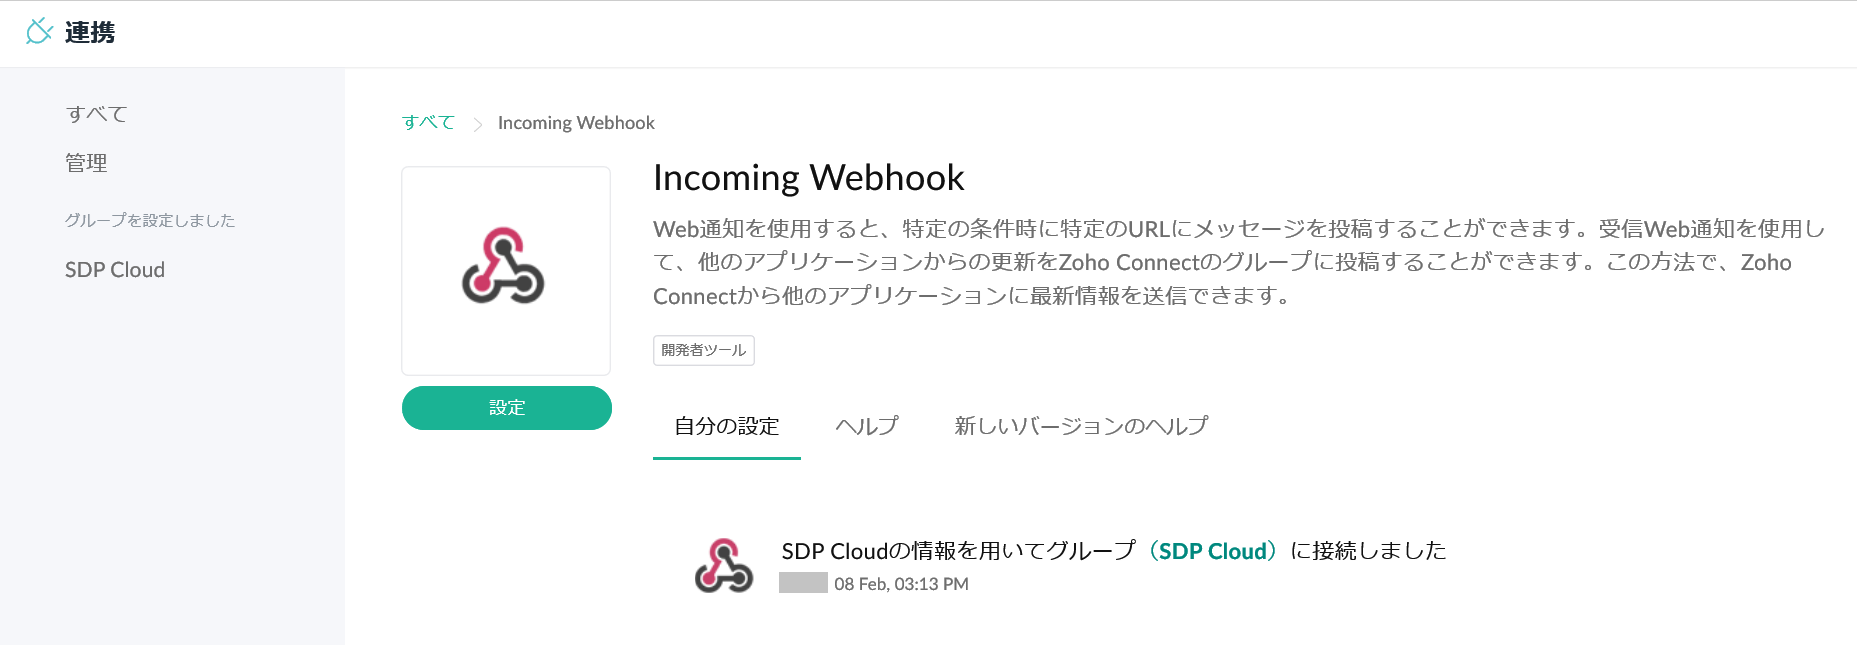 ConnectでIncoming Webhookを追加